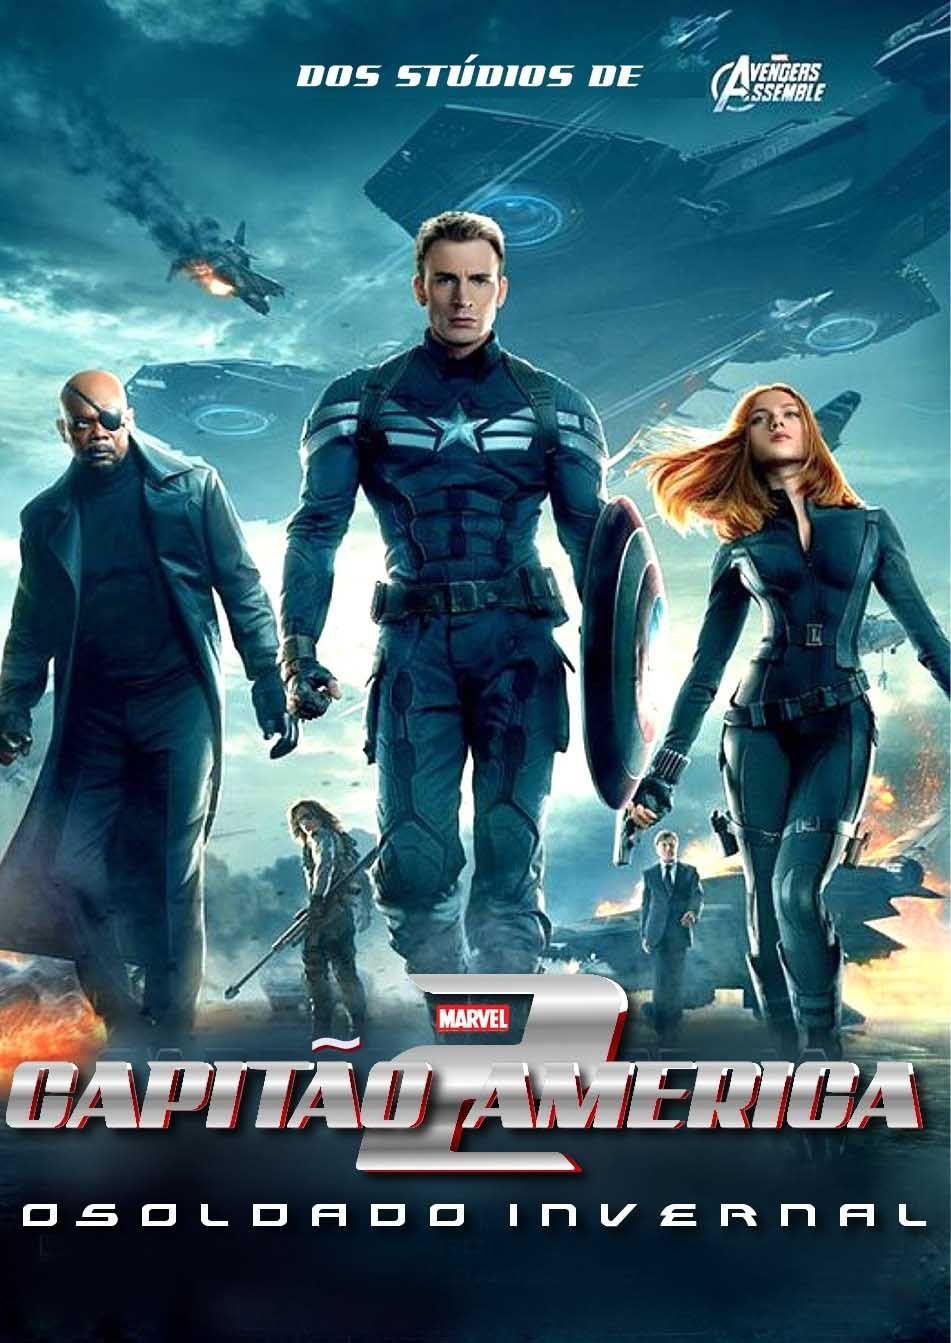 Capitão América 2: O Soldado Invernal Torrent – BluRay 720p e 1080p Dual Áudio (2014)